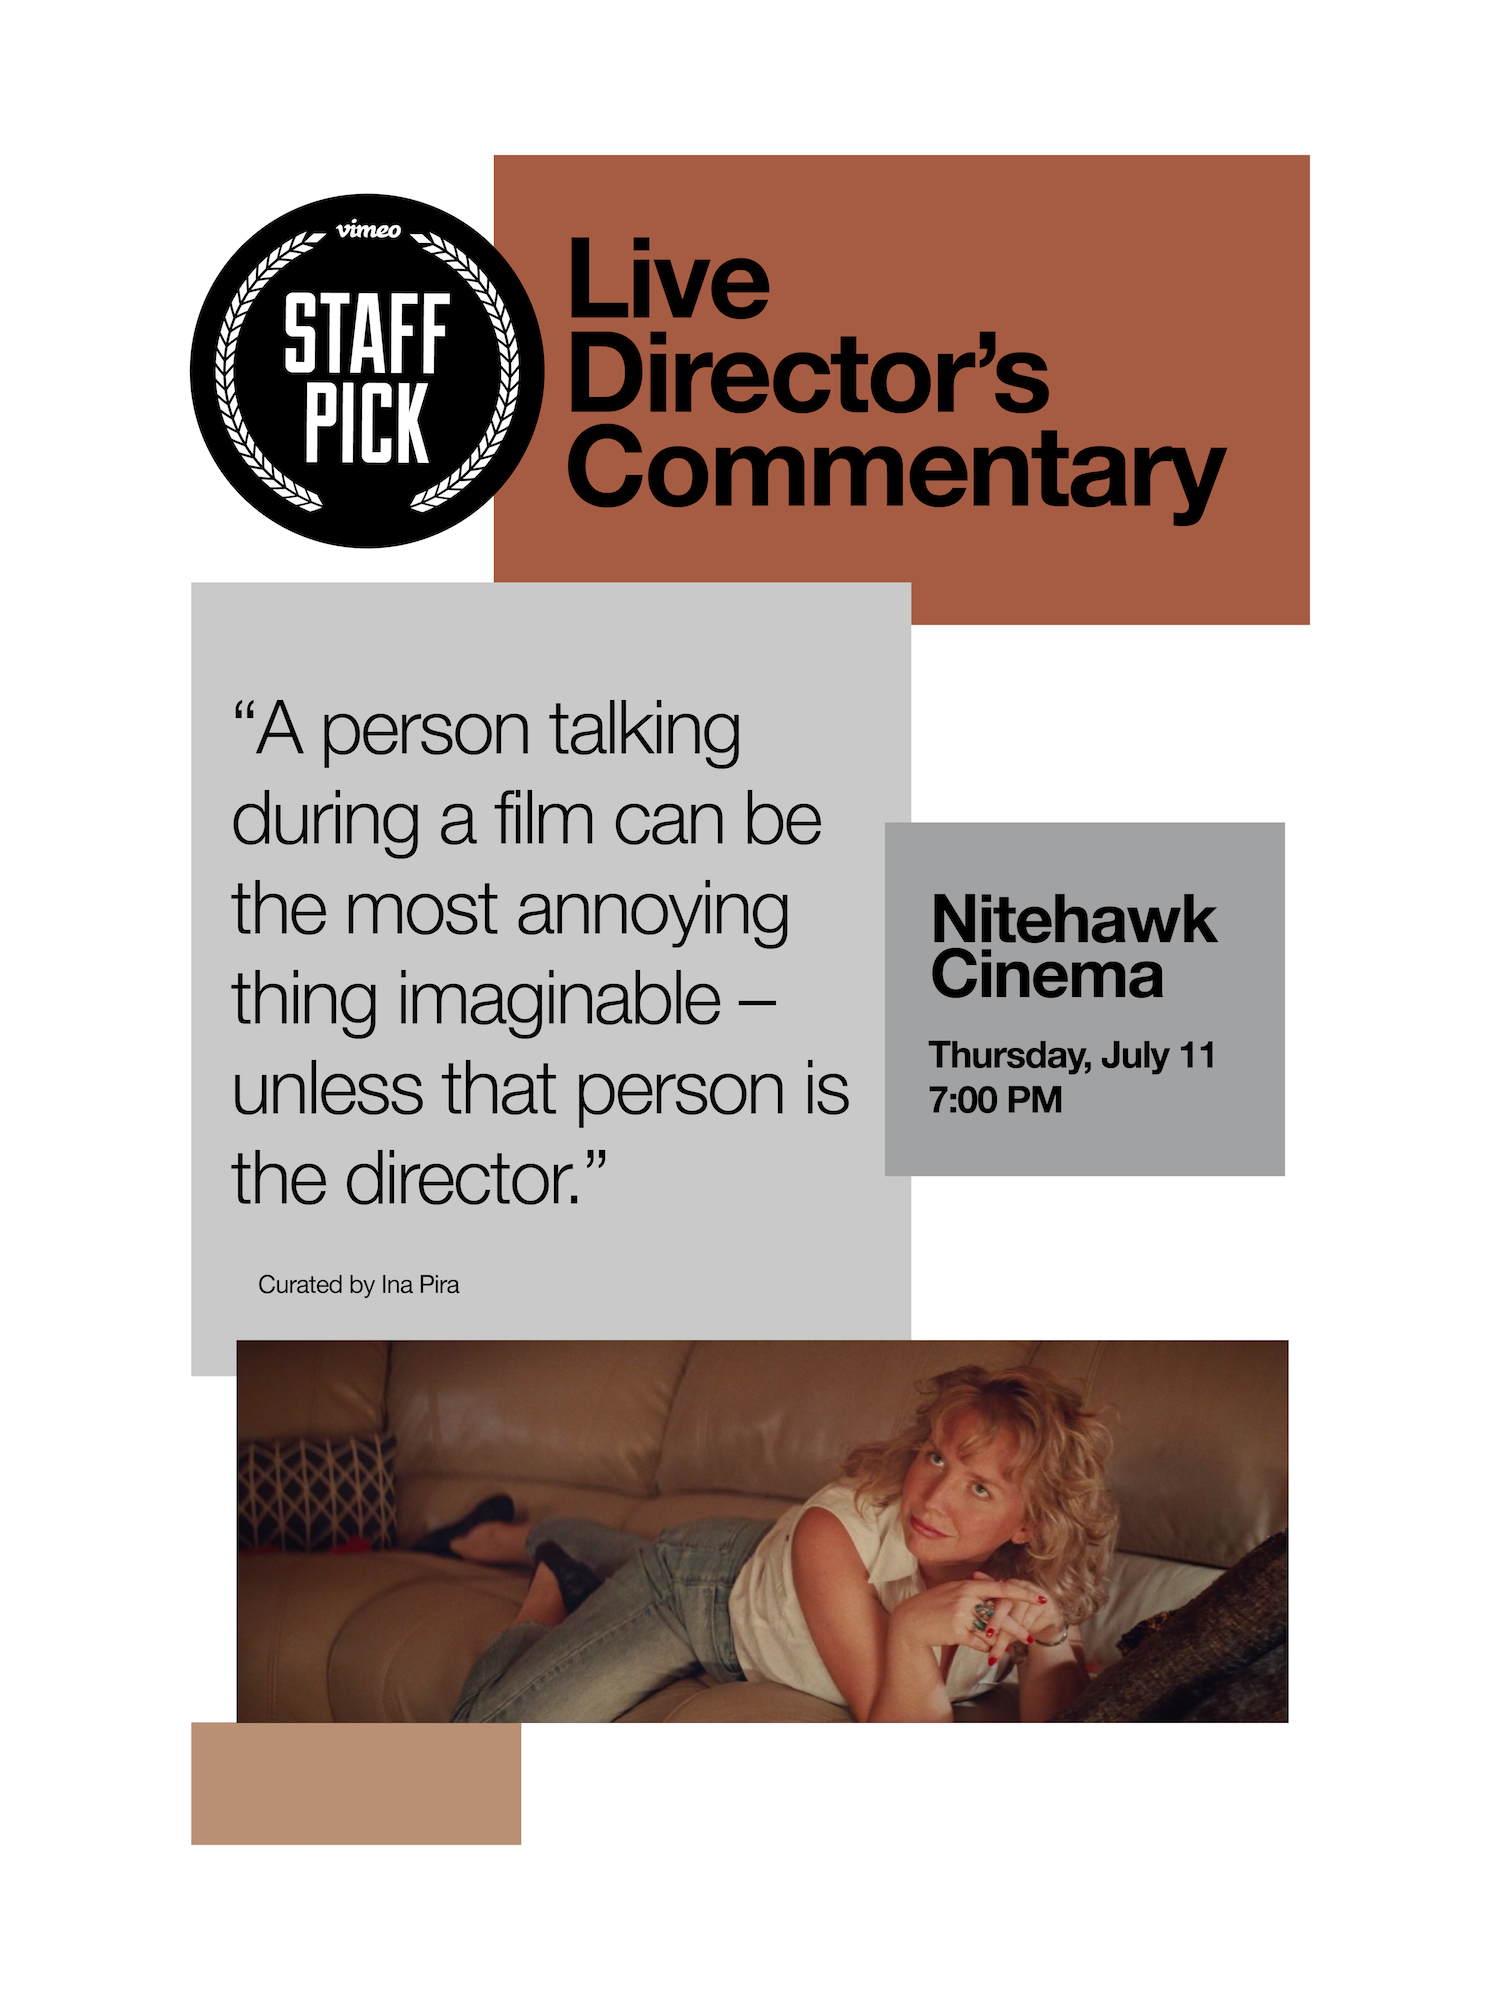 Poster for Vimeo Staff Picks with Live Director's Commentary #4